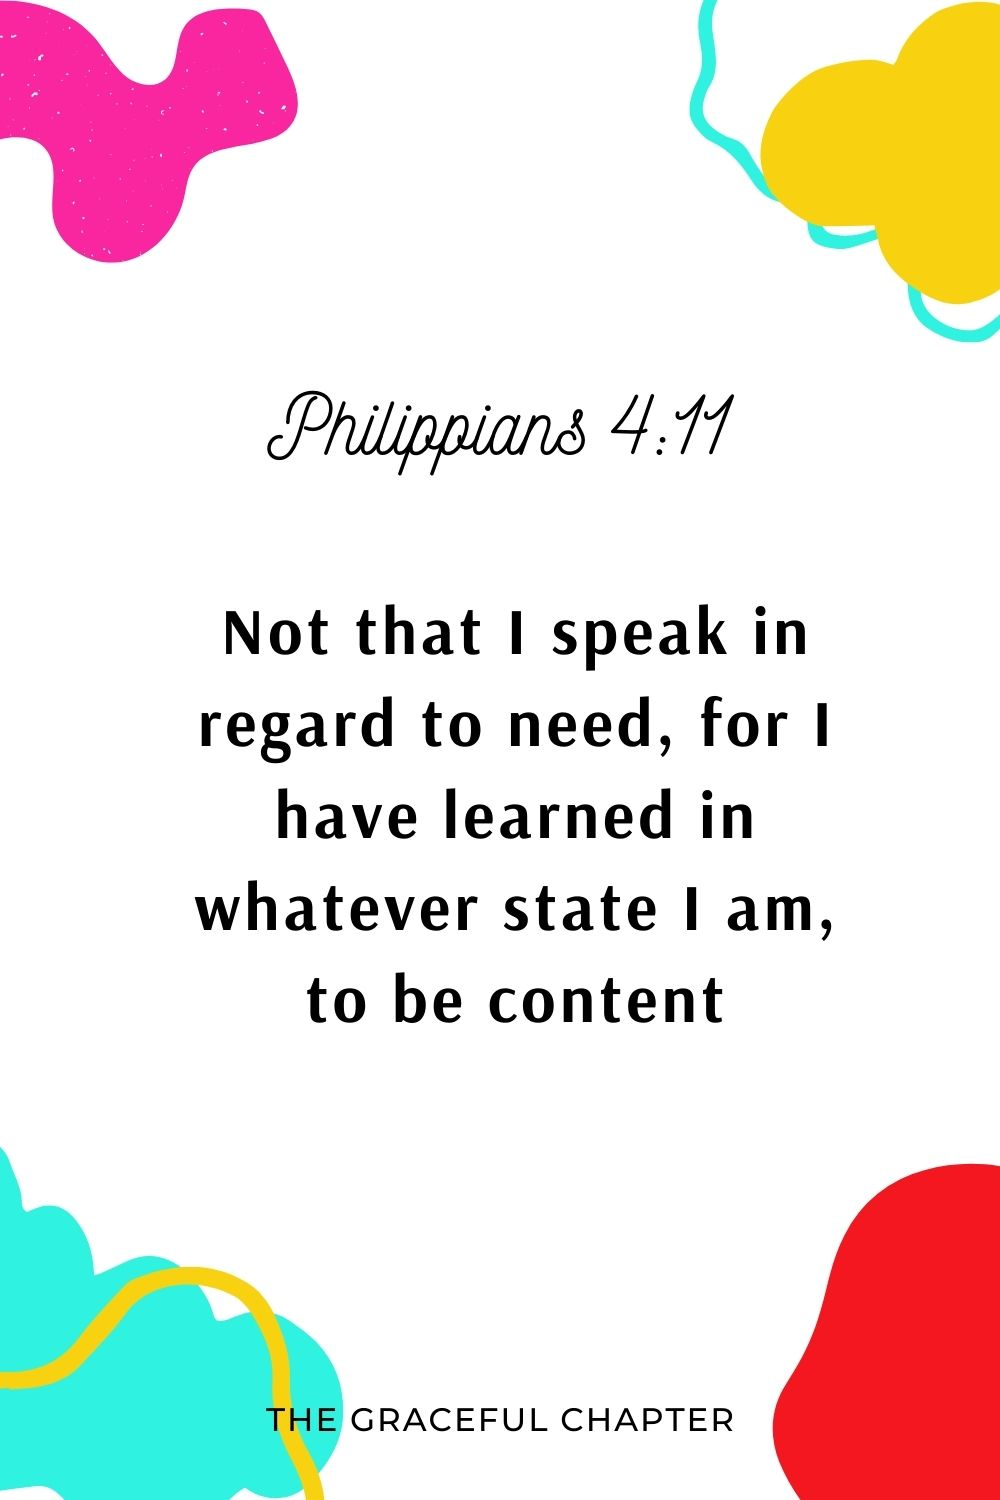 Not that I speak in regard to need, for I have learned in whatever state I am, to be content: Philippians 4:11